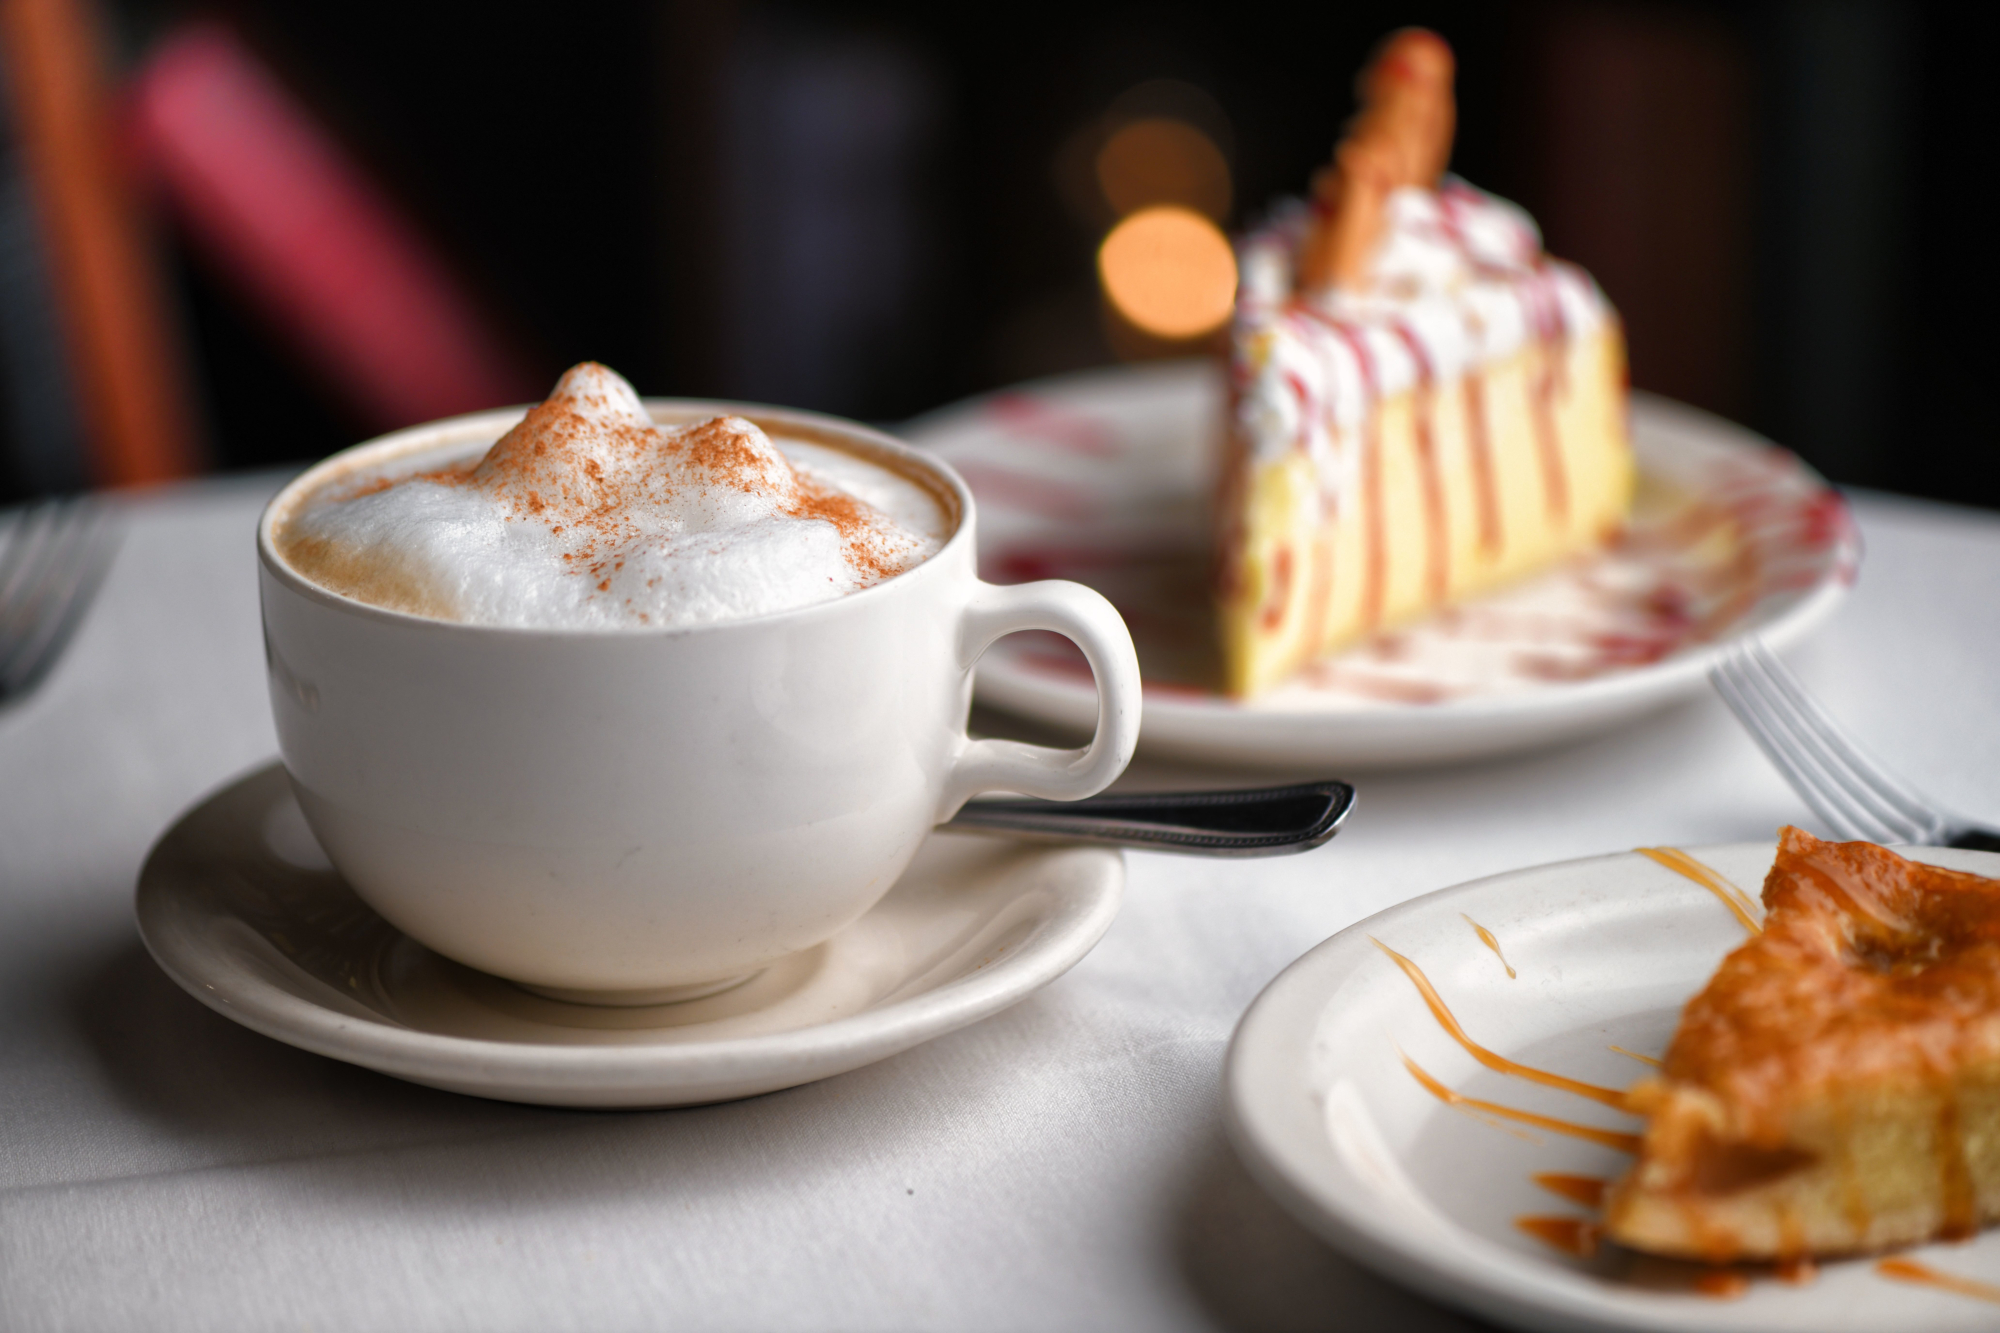 Cappuccino with Limoncello Mousse Cake topped with a butter cookie and a pear almond torte on the side